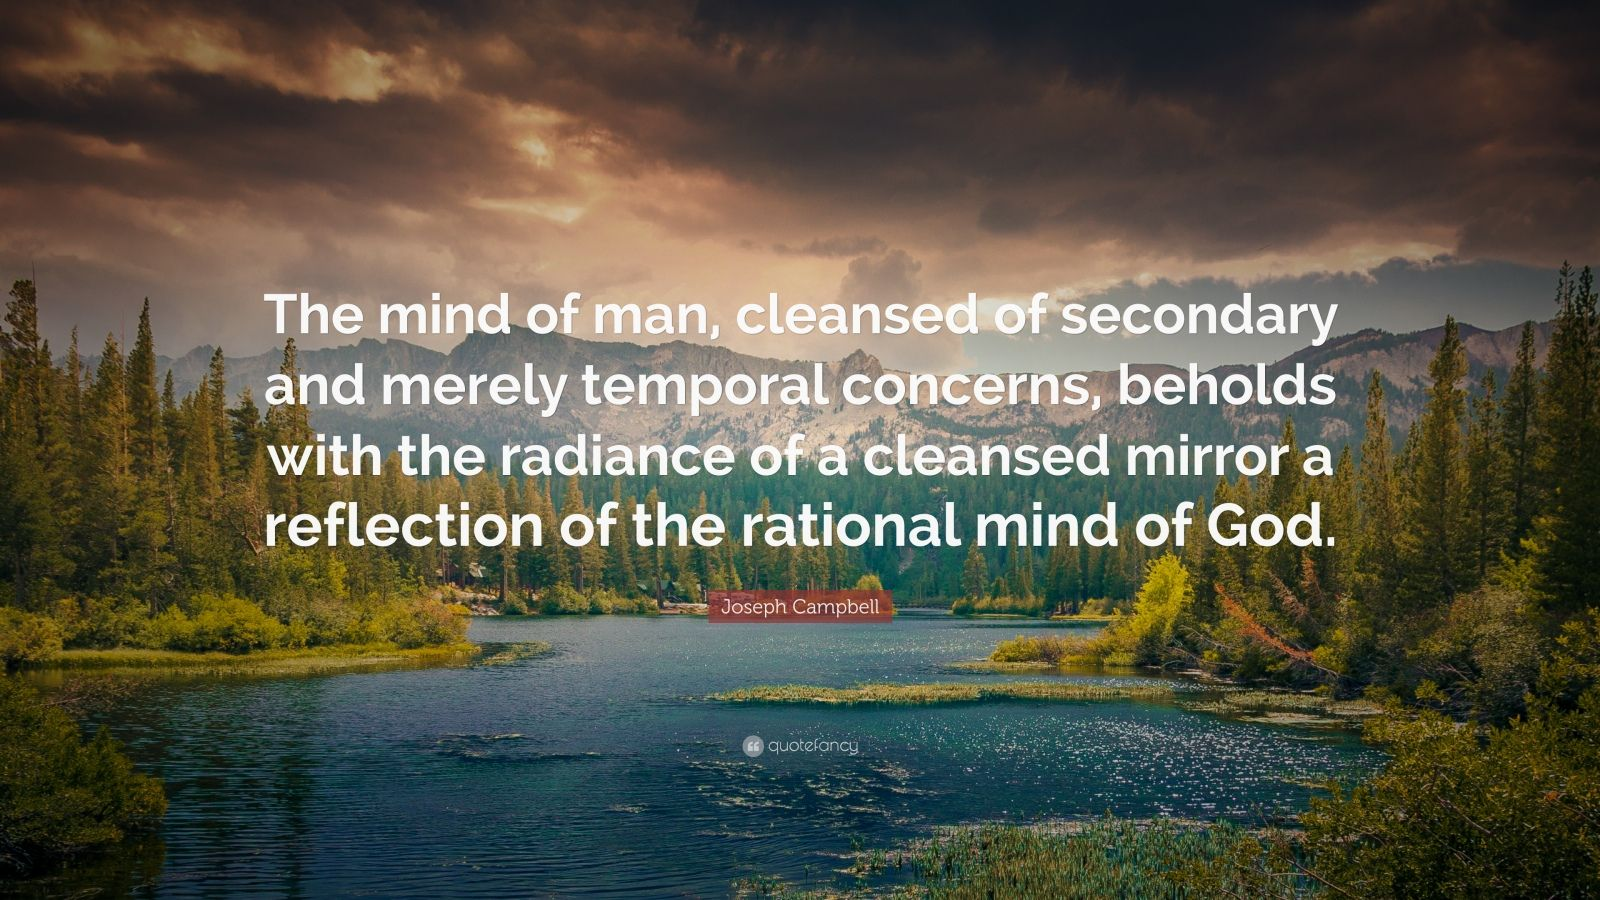 """Joseph Campbell Quote: """"The mind of man, cleansed of secondary and merely temporal concerns, beholds with the radiance of a cleansed mirror a reflection of the rational mind of God."""""""